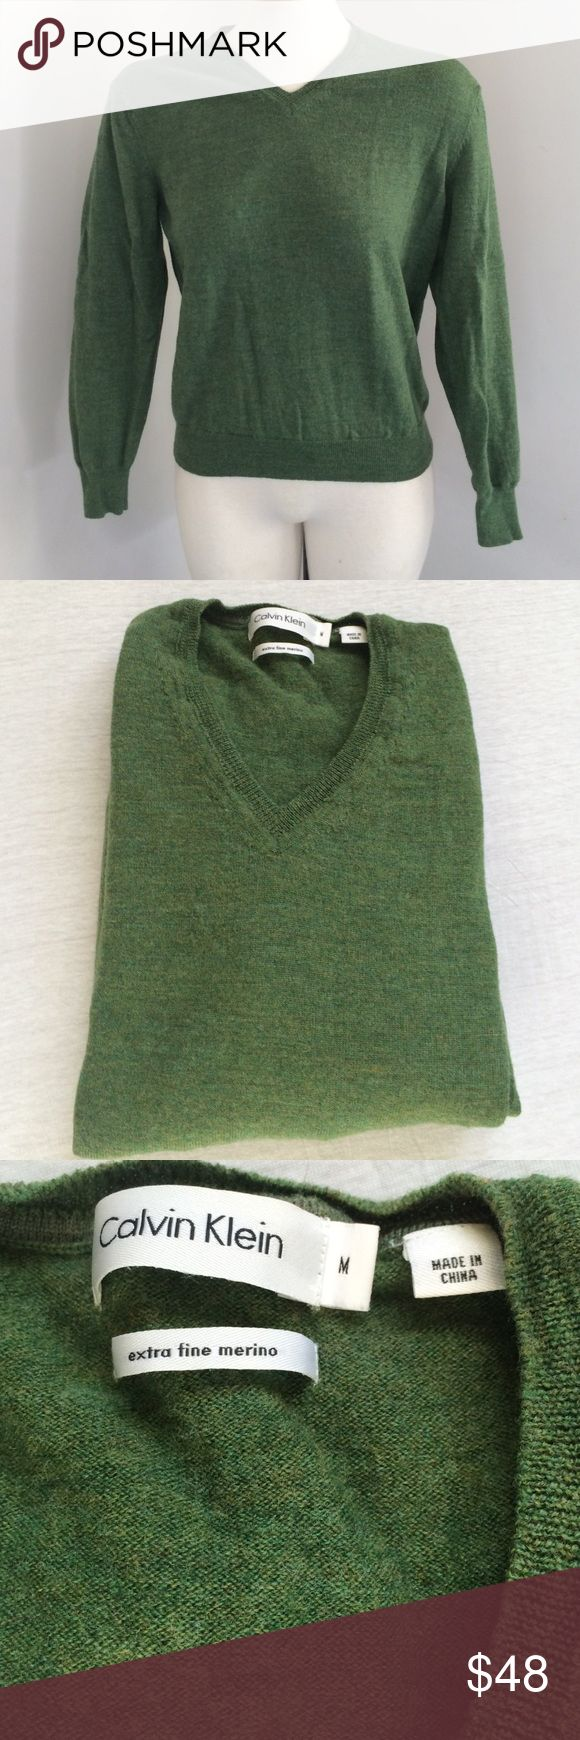 "🍃Calvin Klein 100% Merino V Neck Wool Sweater🍃 luscious merino wool, from Calvin Klein, in a heathered moss green will keep you warm and toasty through fall and winter. this V neck sweater won't give you the wool itchies so feel free to wear against bare skin or with a little cami underneath.  measurements: across shoulder 16"", pit to pit 18"", total length 22"". rubbed hem and cuffs. Calvin Klein Sweaters V-Necks"